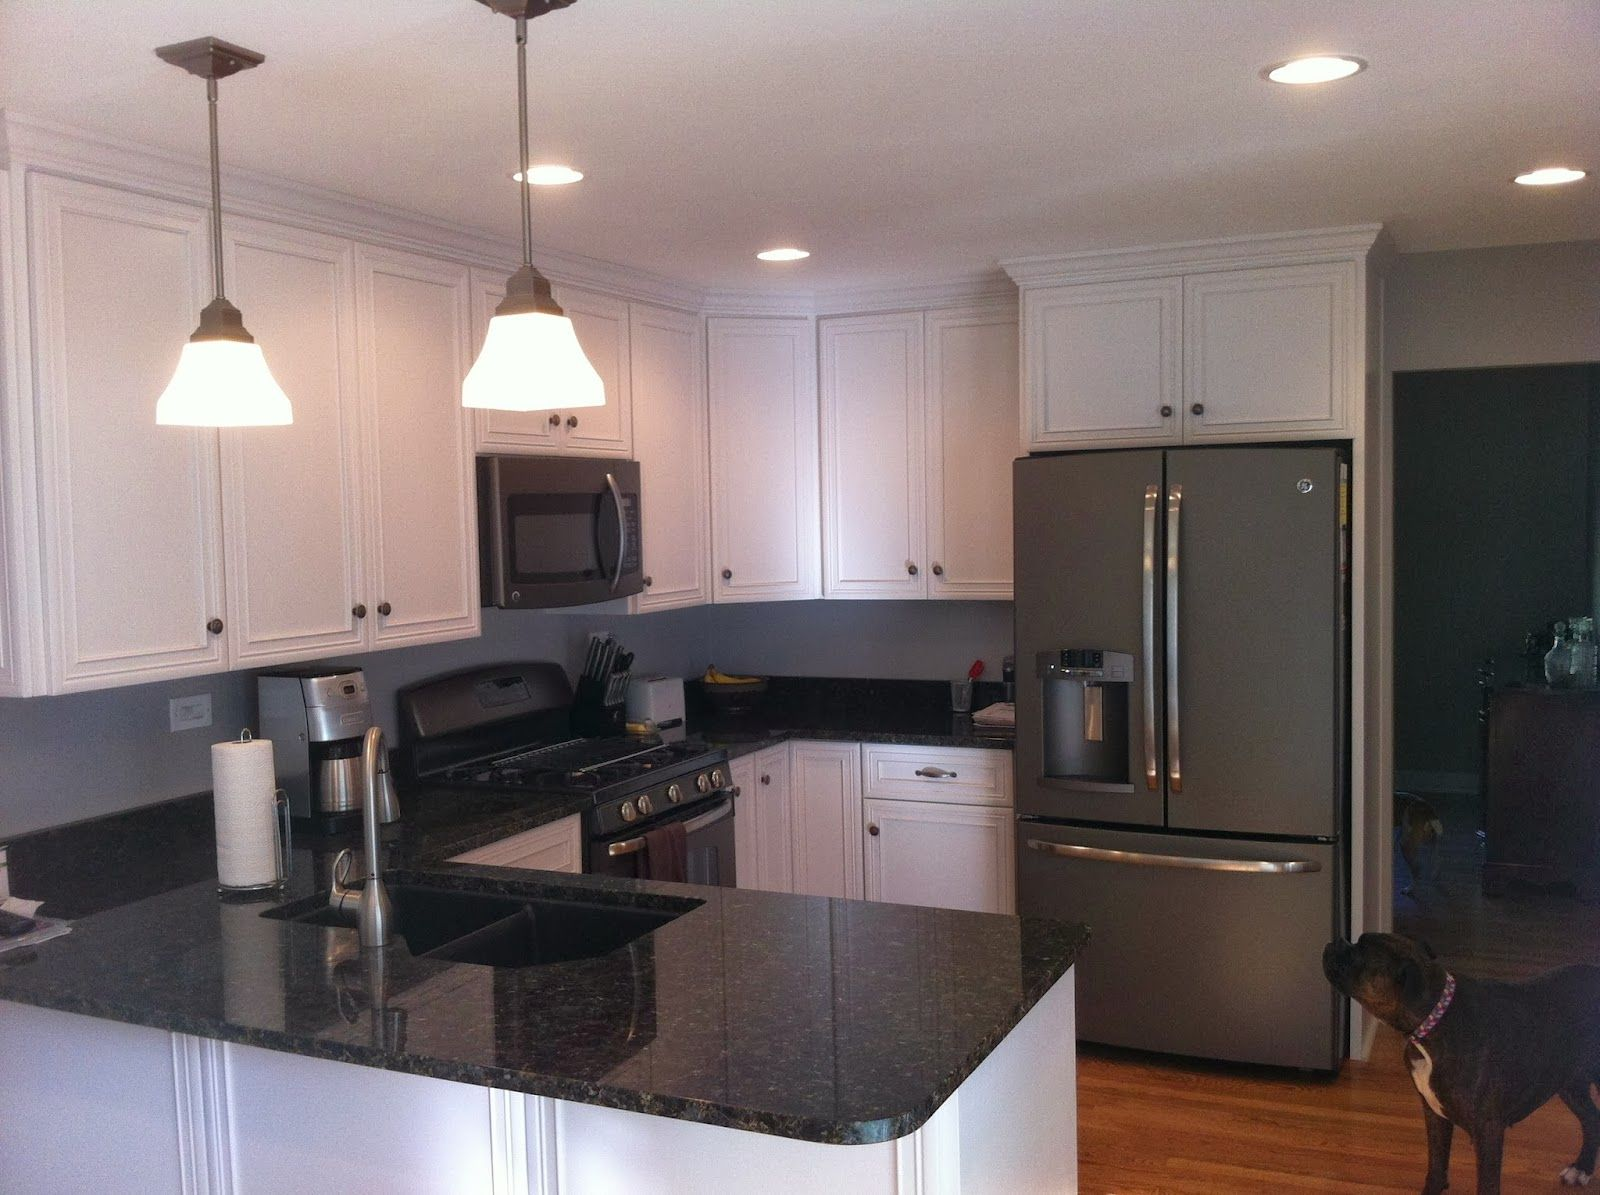 Merveilleux Slate Gray Appliances In Kitchen | AFTER: Granite Counter Tops, Slate Gray  Appliances, Taller Cabinets .